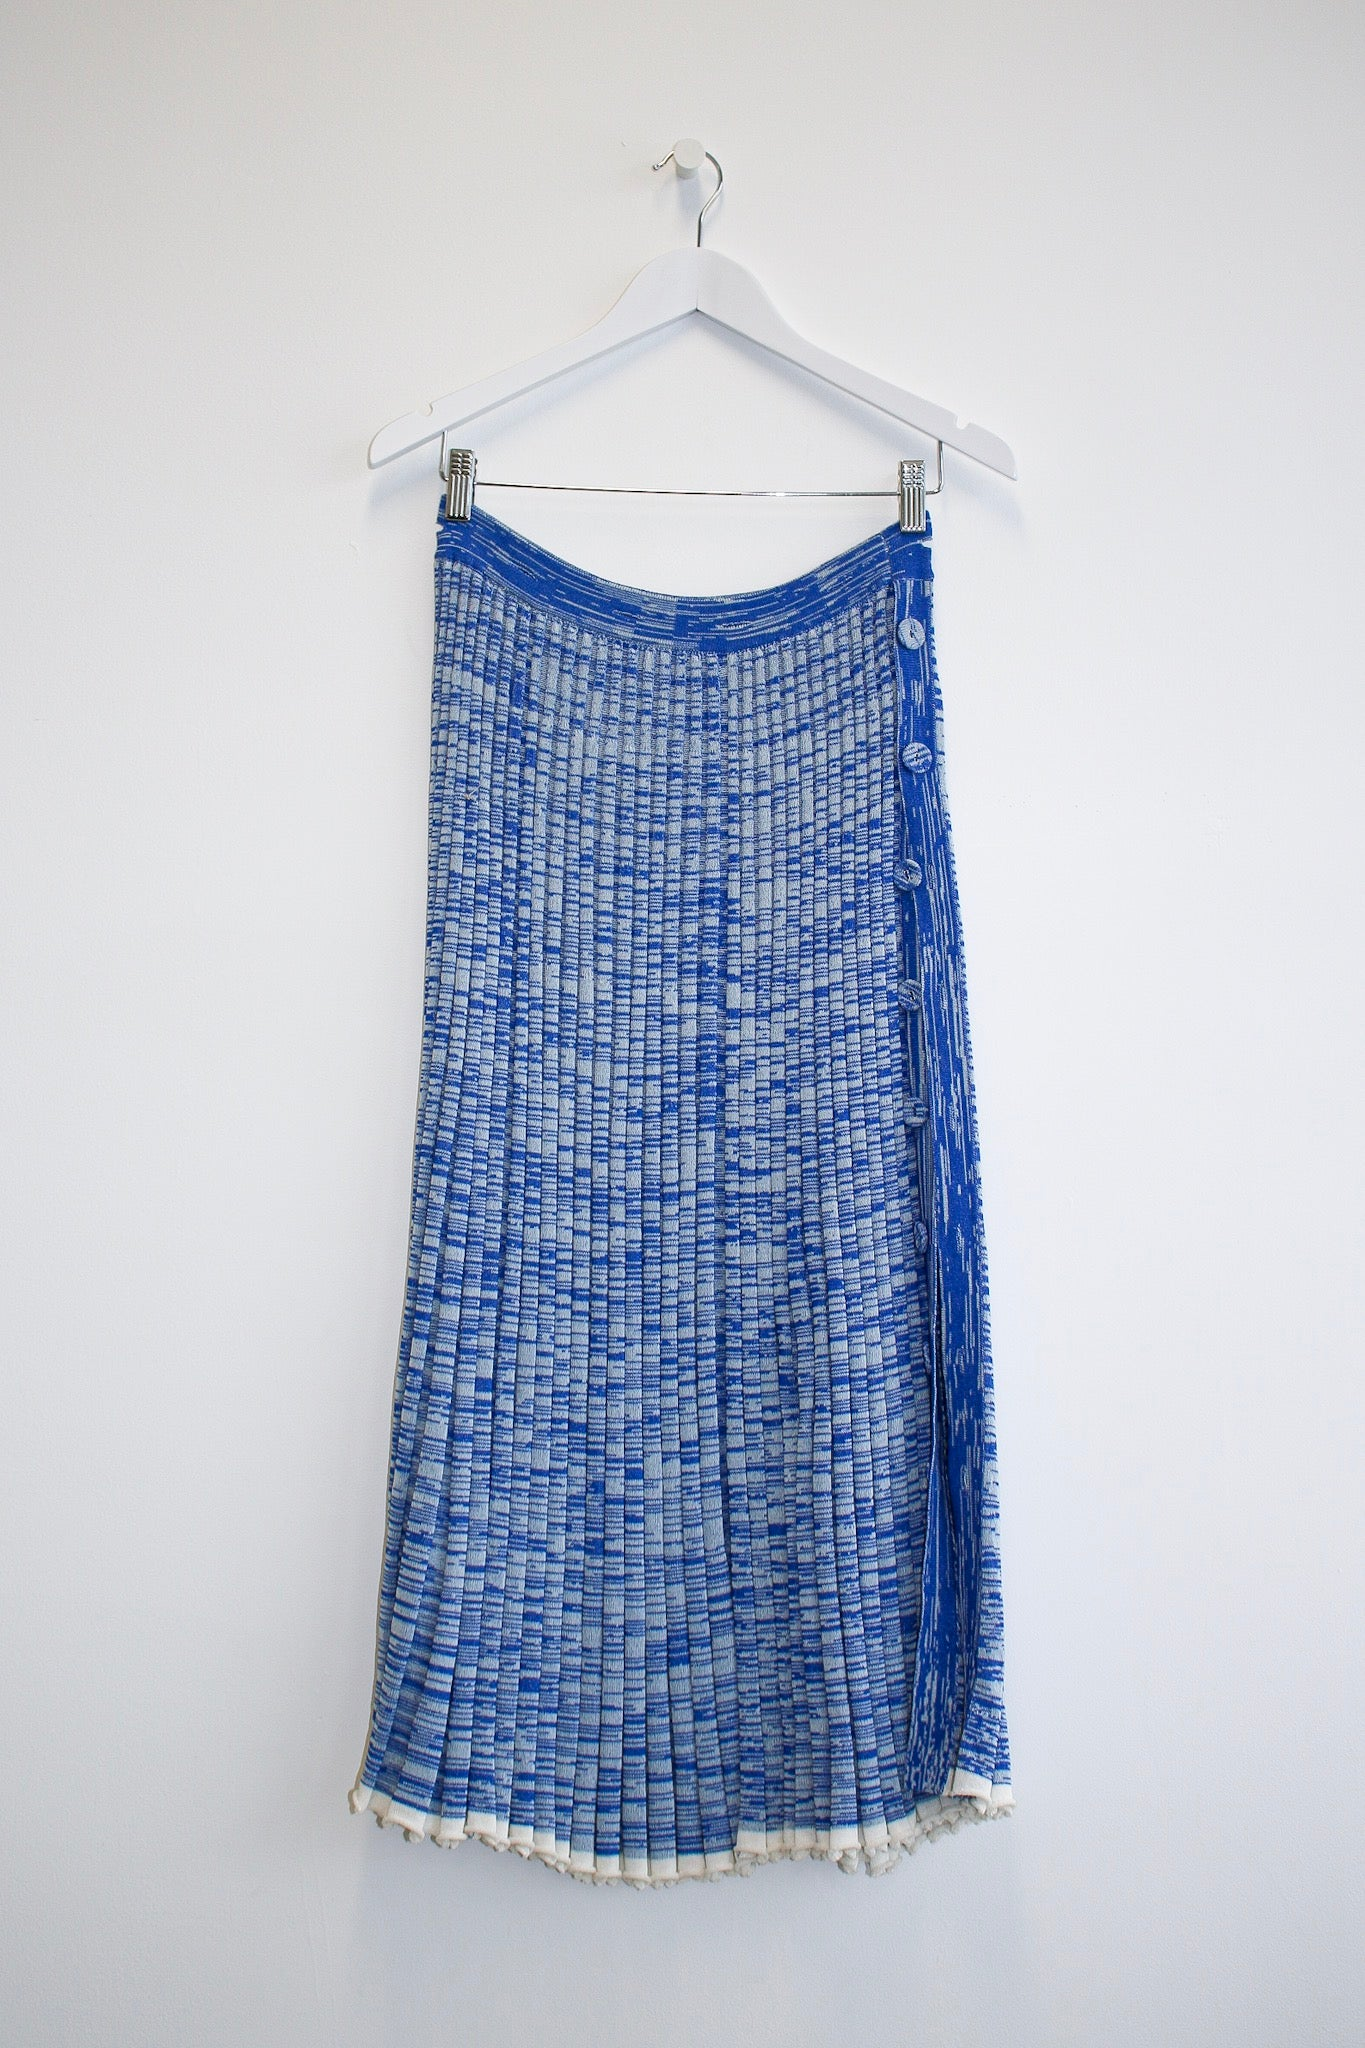 Christopher Esber Deconstructed Knit Set in speckled blue